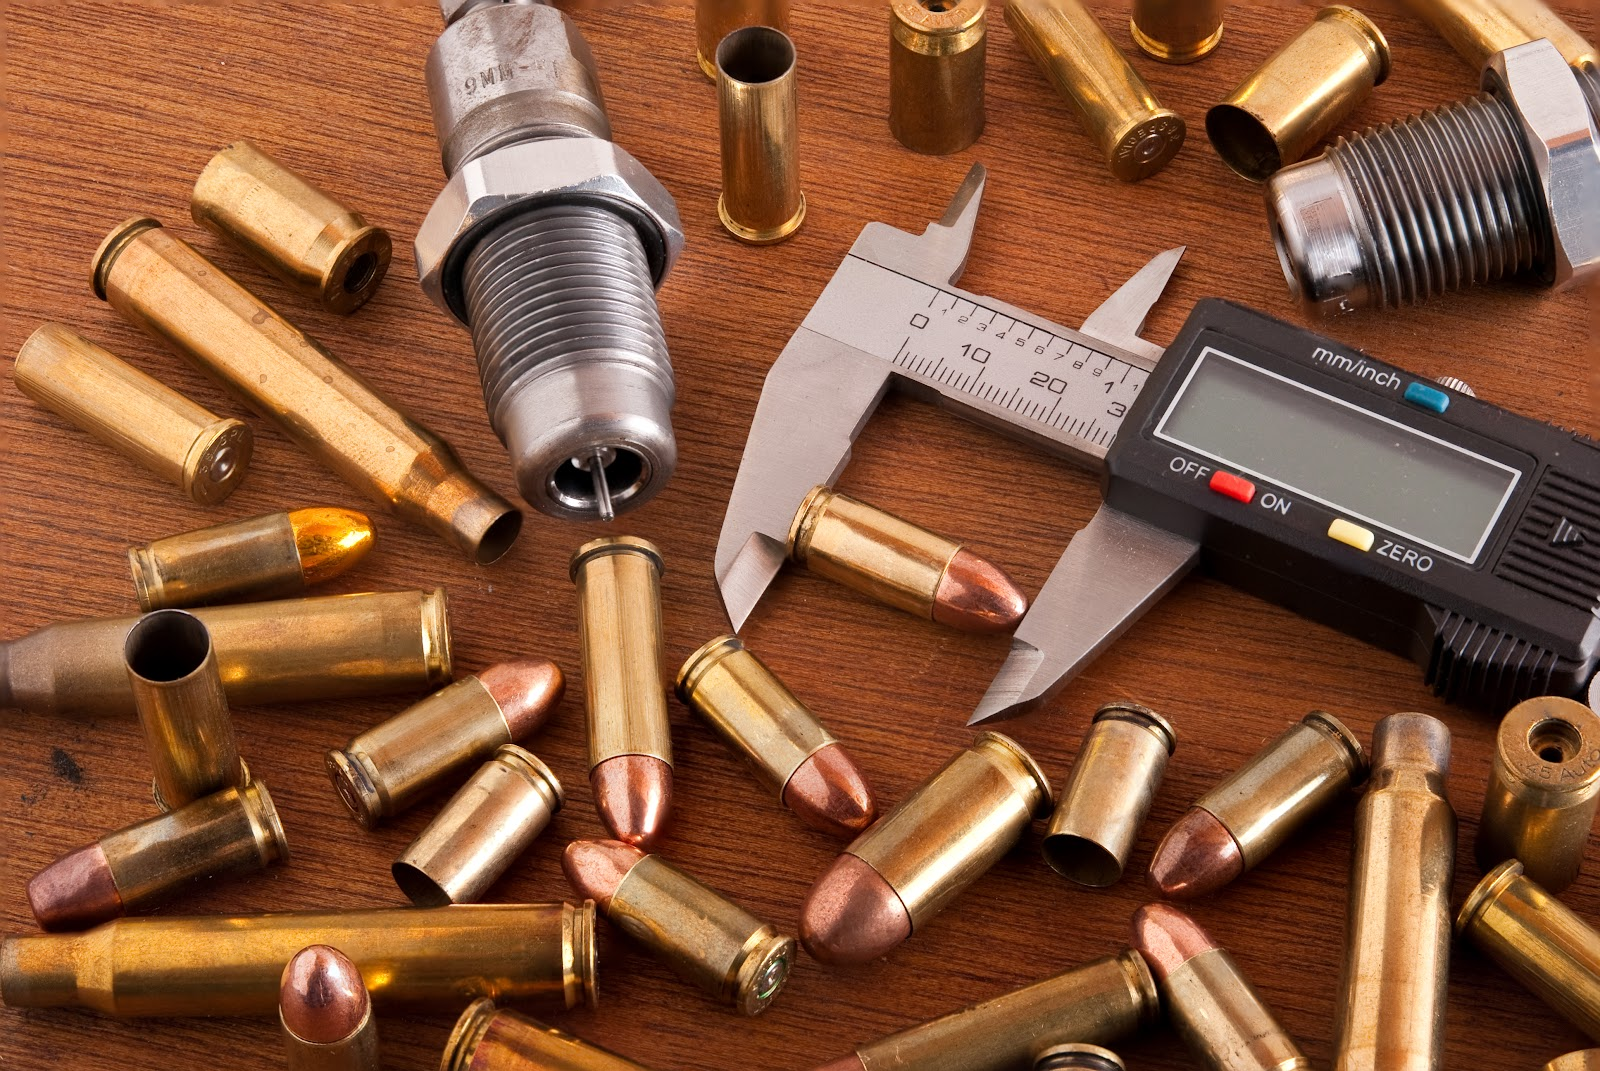 do it yourself ammunition reloading or recycling with tools